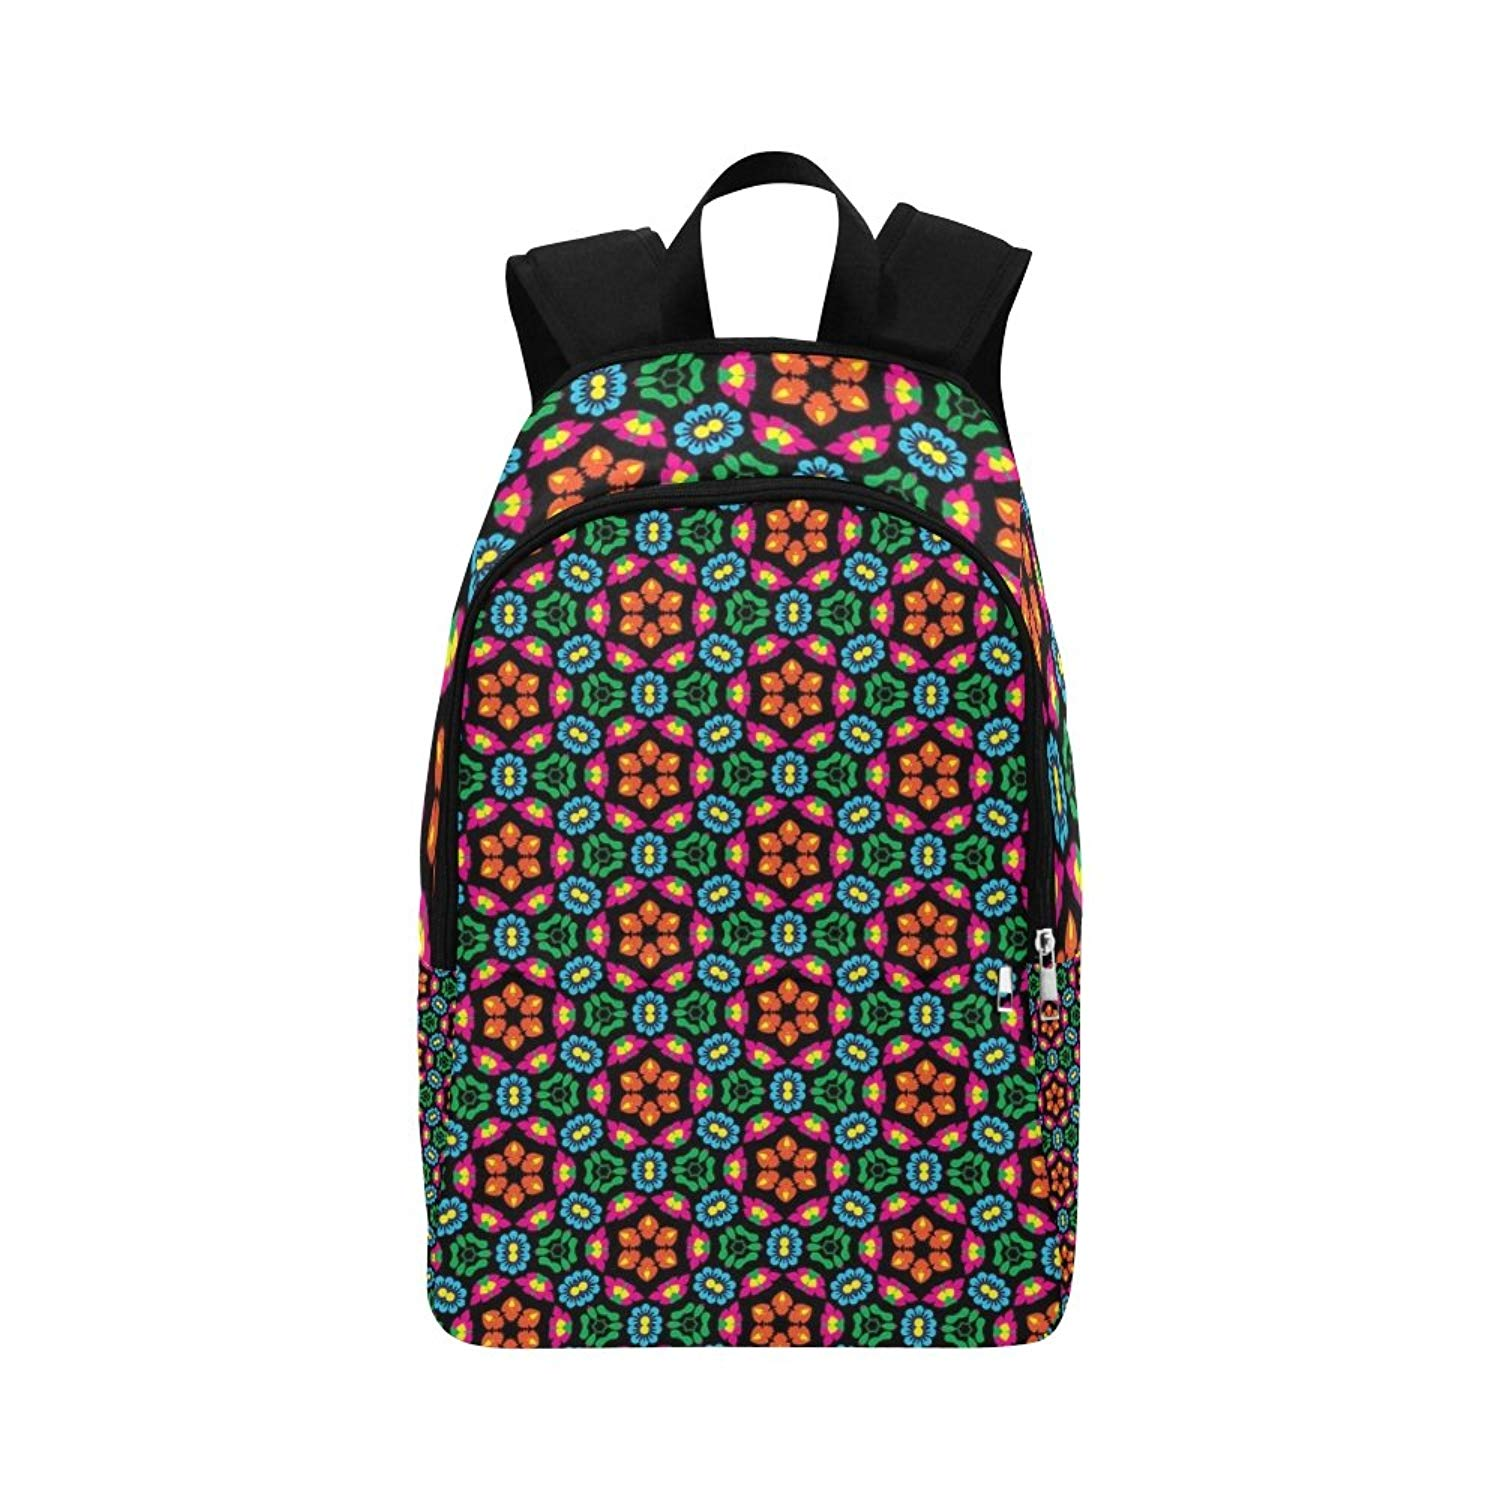 Texture Structure Pattern Abstract Unique Custom Outdoor Shoulders Bag Fabric Backpack Multipurpose Daypacks For Adult